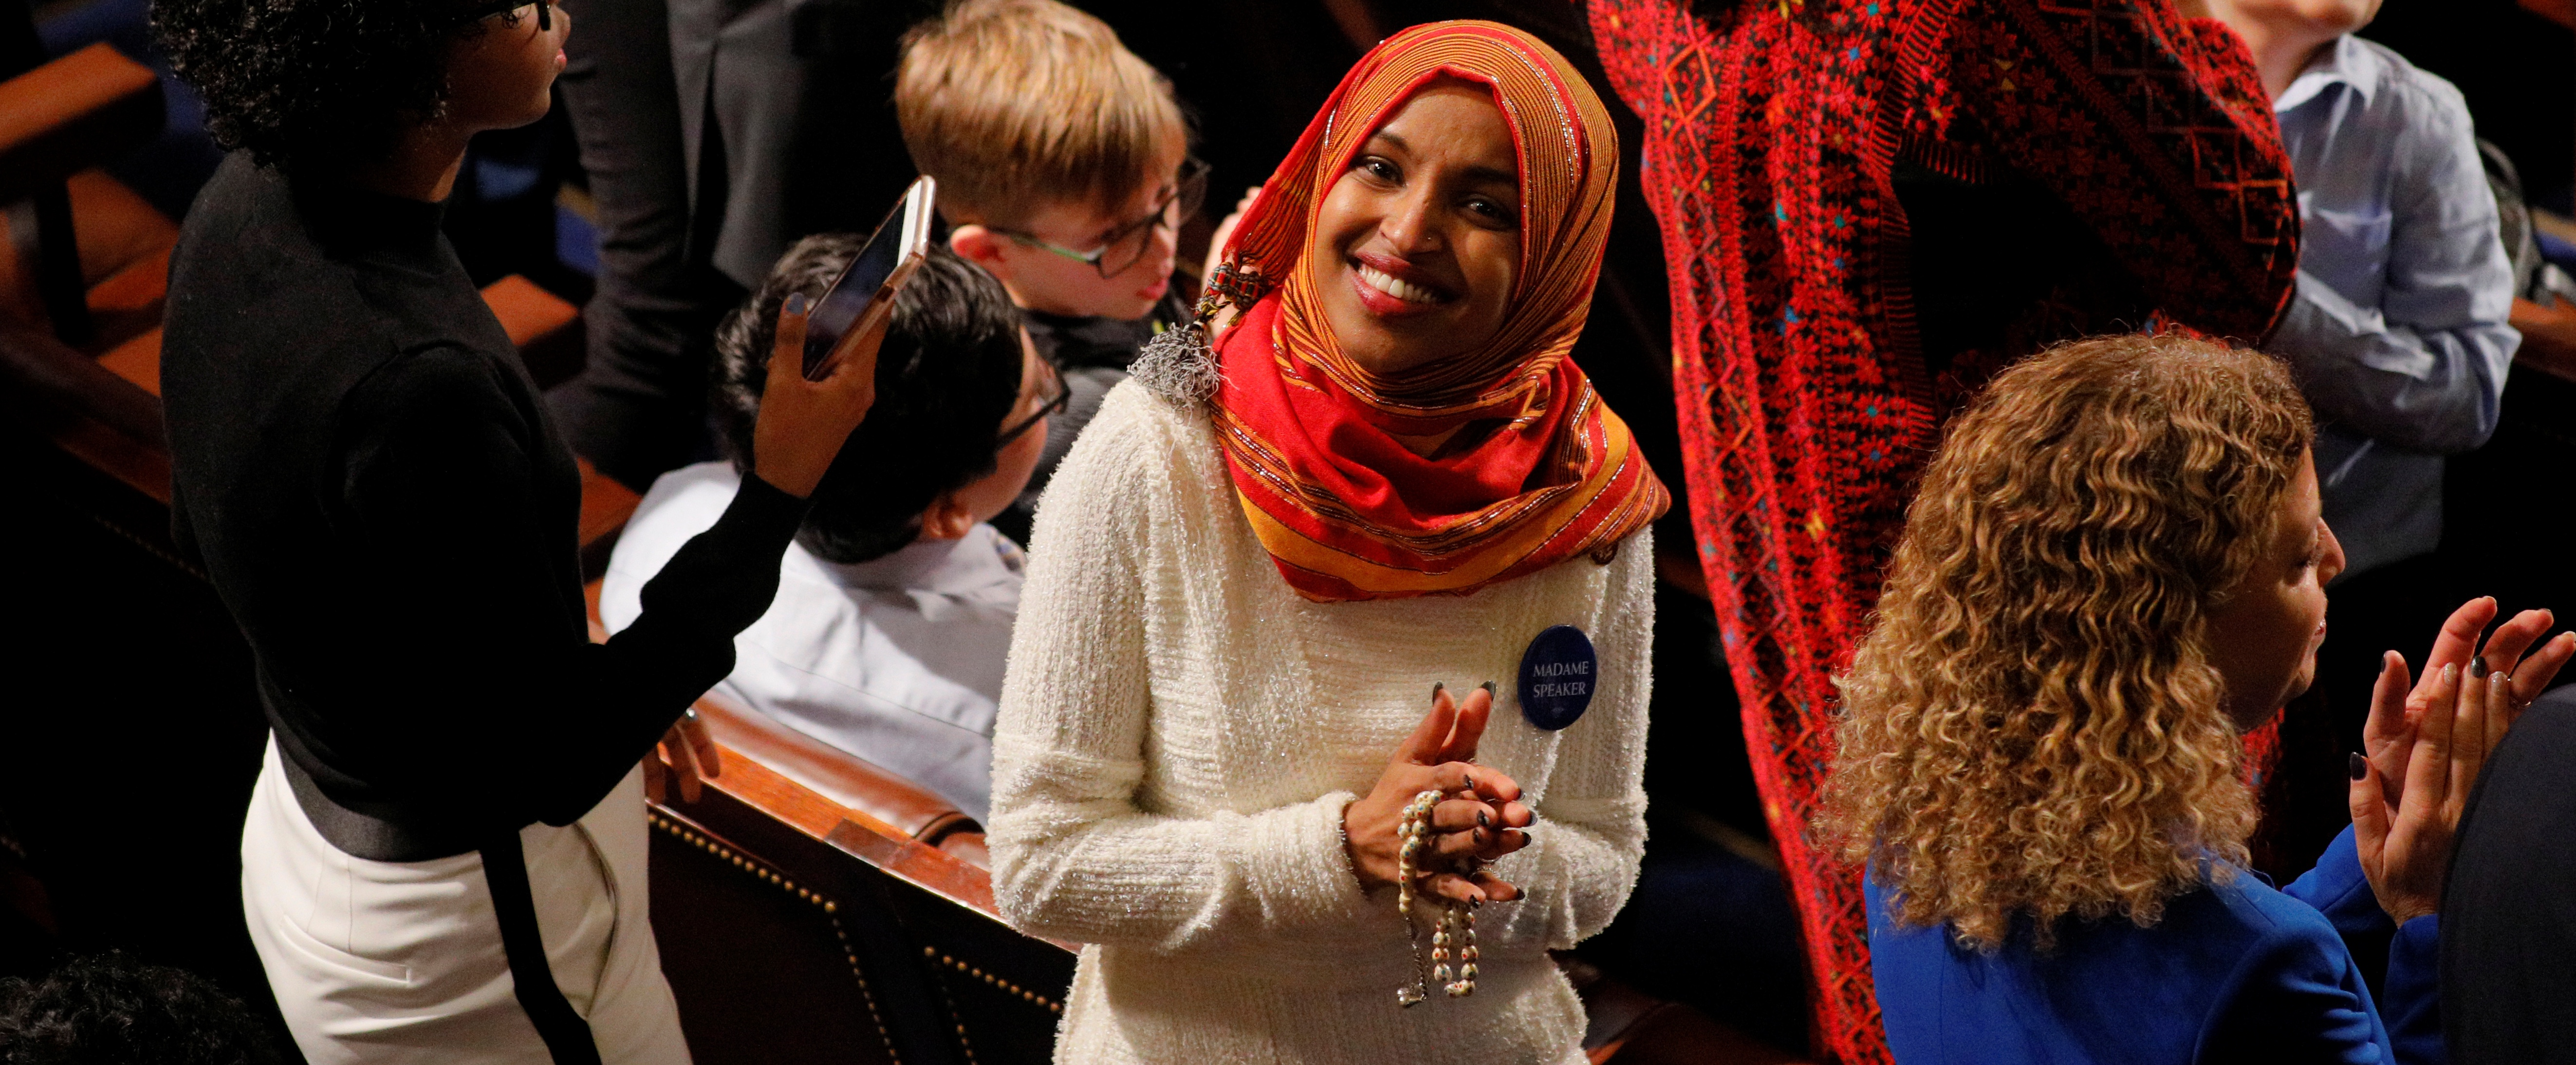 U.S. Rep.-elect Ilhan Omar (D-MN) smiles from the floor of the U.S. House of Representatives before being sworn in to the new Congress at the U.S. Capitol in Washington, U.S., January 3, 2019. REUTERS/Brian Snyder